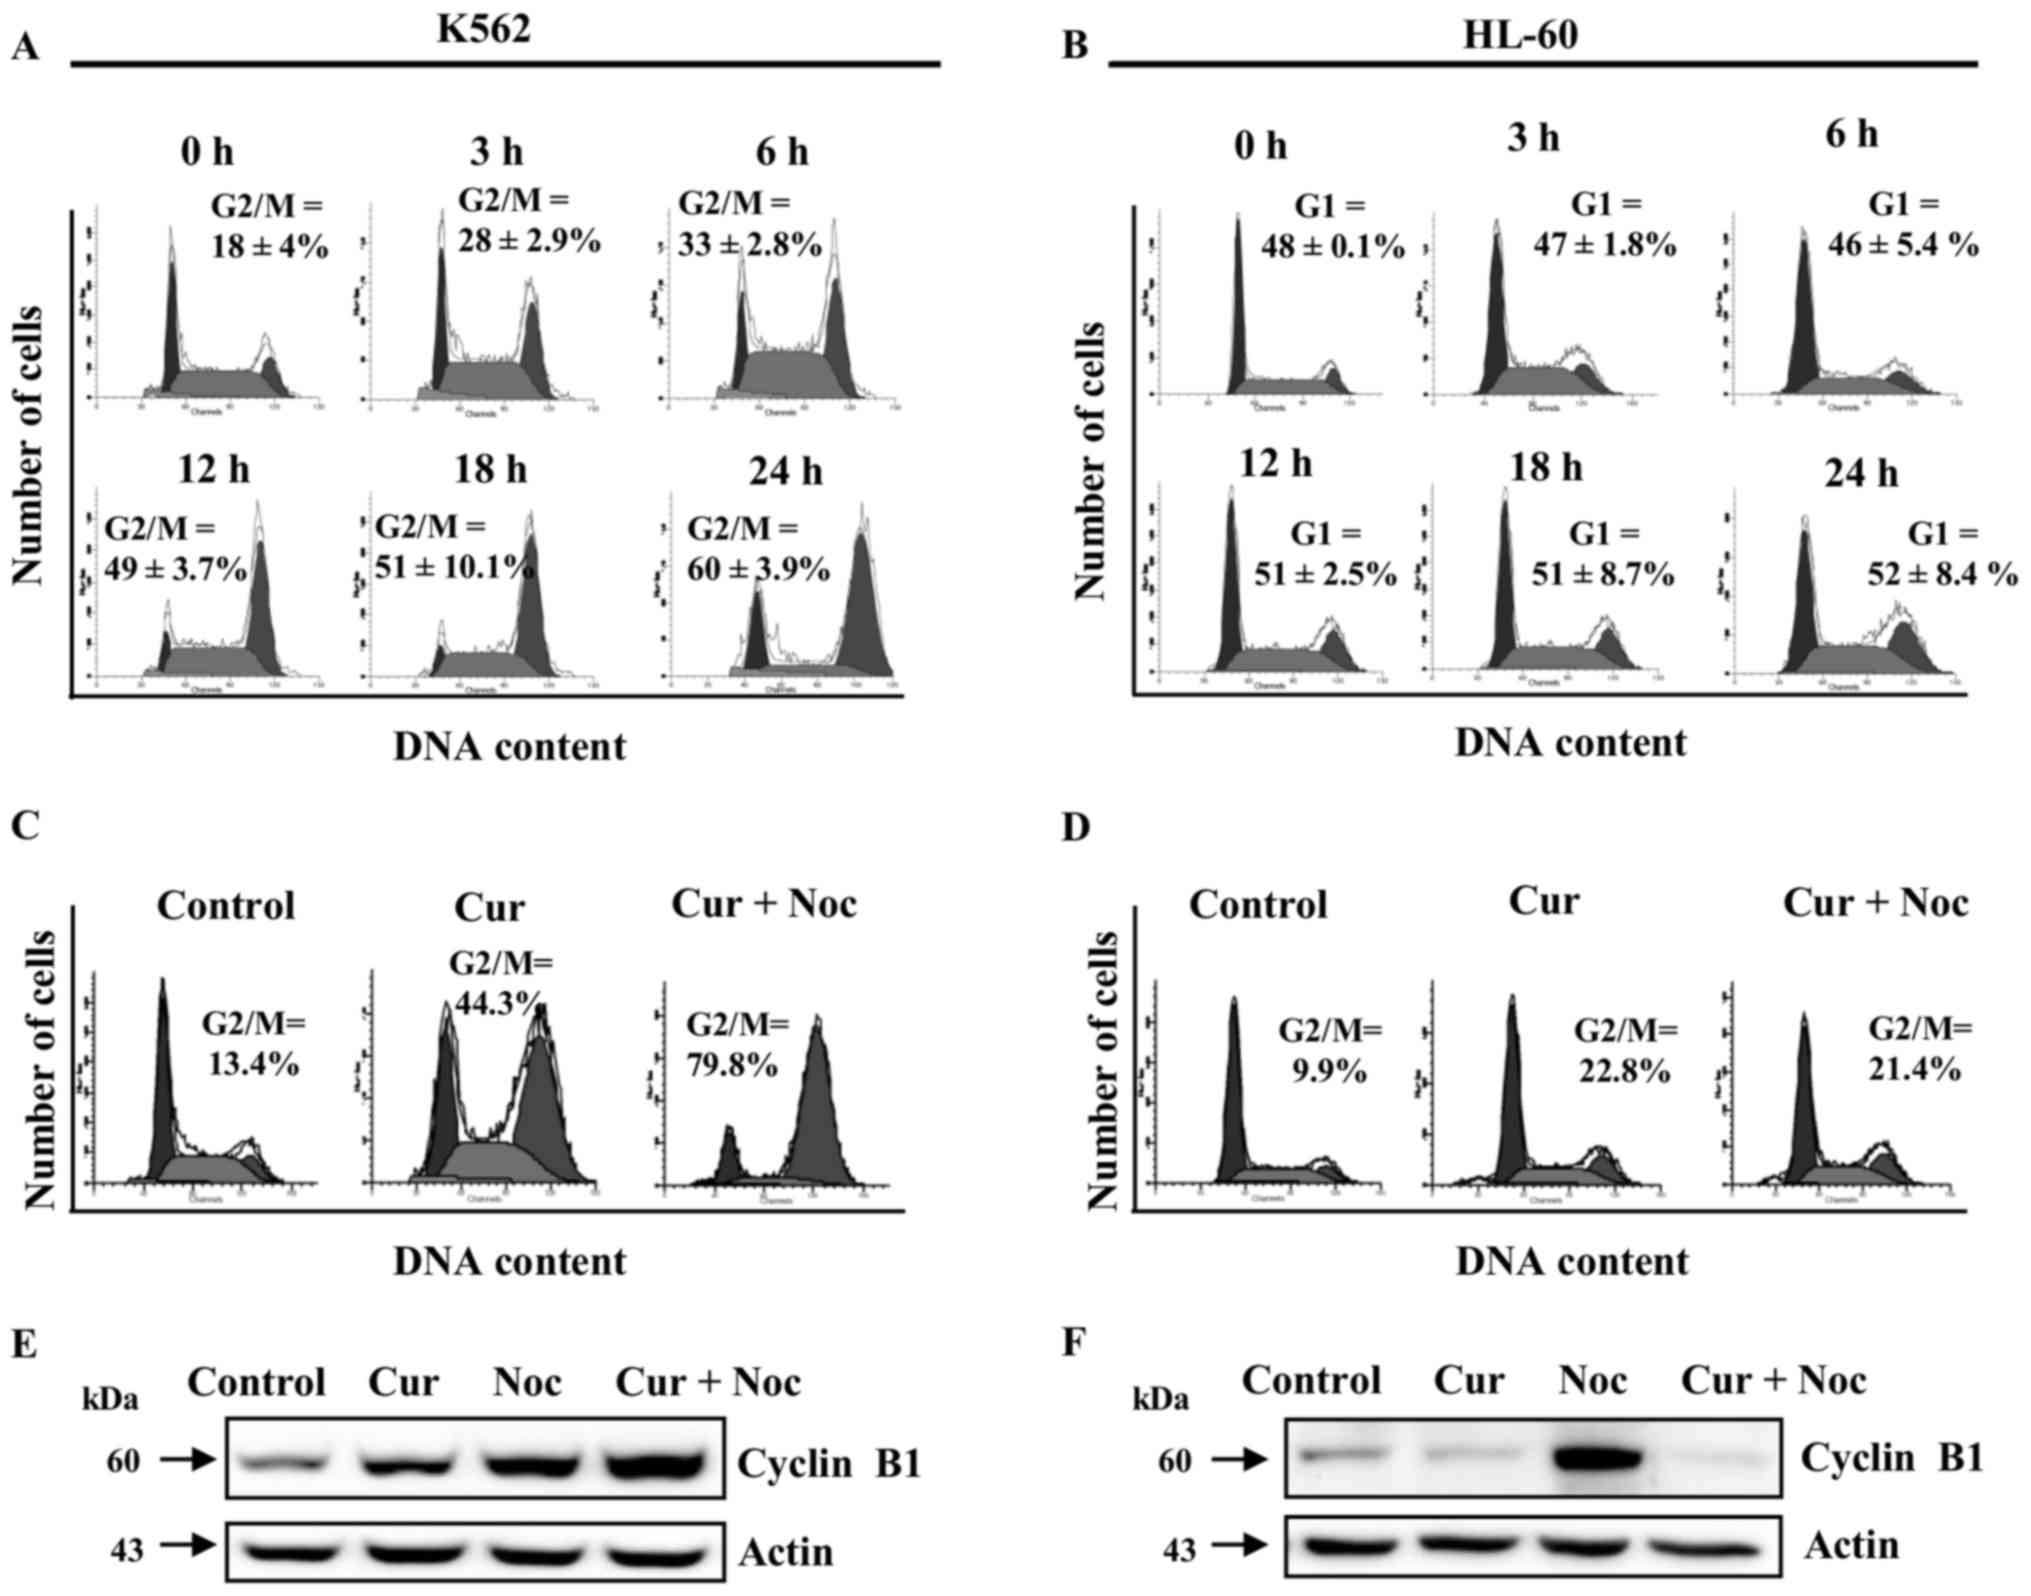 curcumin differentially affects cell cycle and cell death in acutecurcumin differentially alters cell cycle progression in chronic or acute myeloid leukemia cells (a) k562 and (b) hl 60 cells were treated with curcumin 20